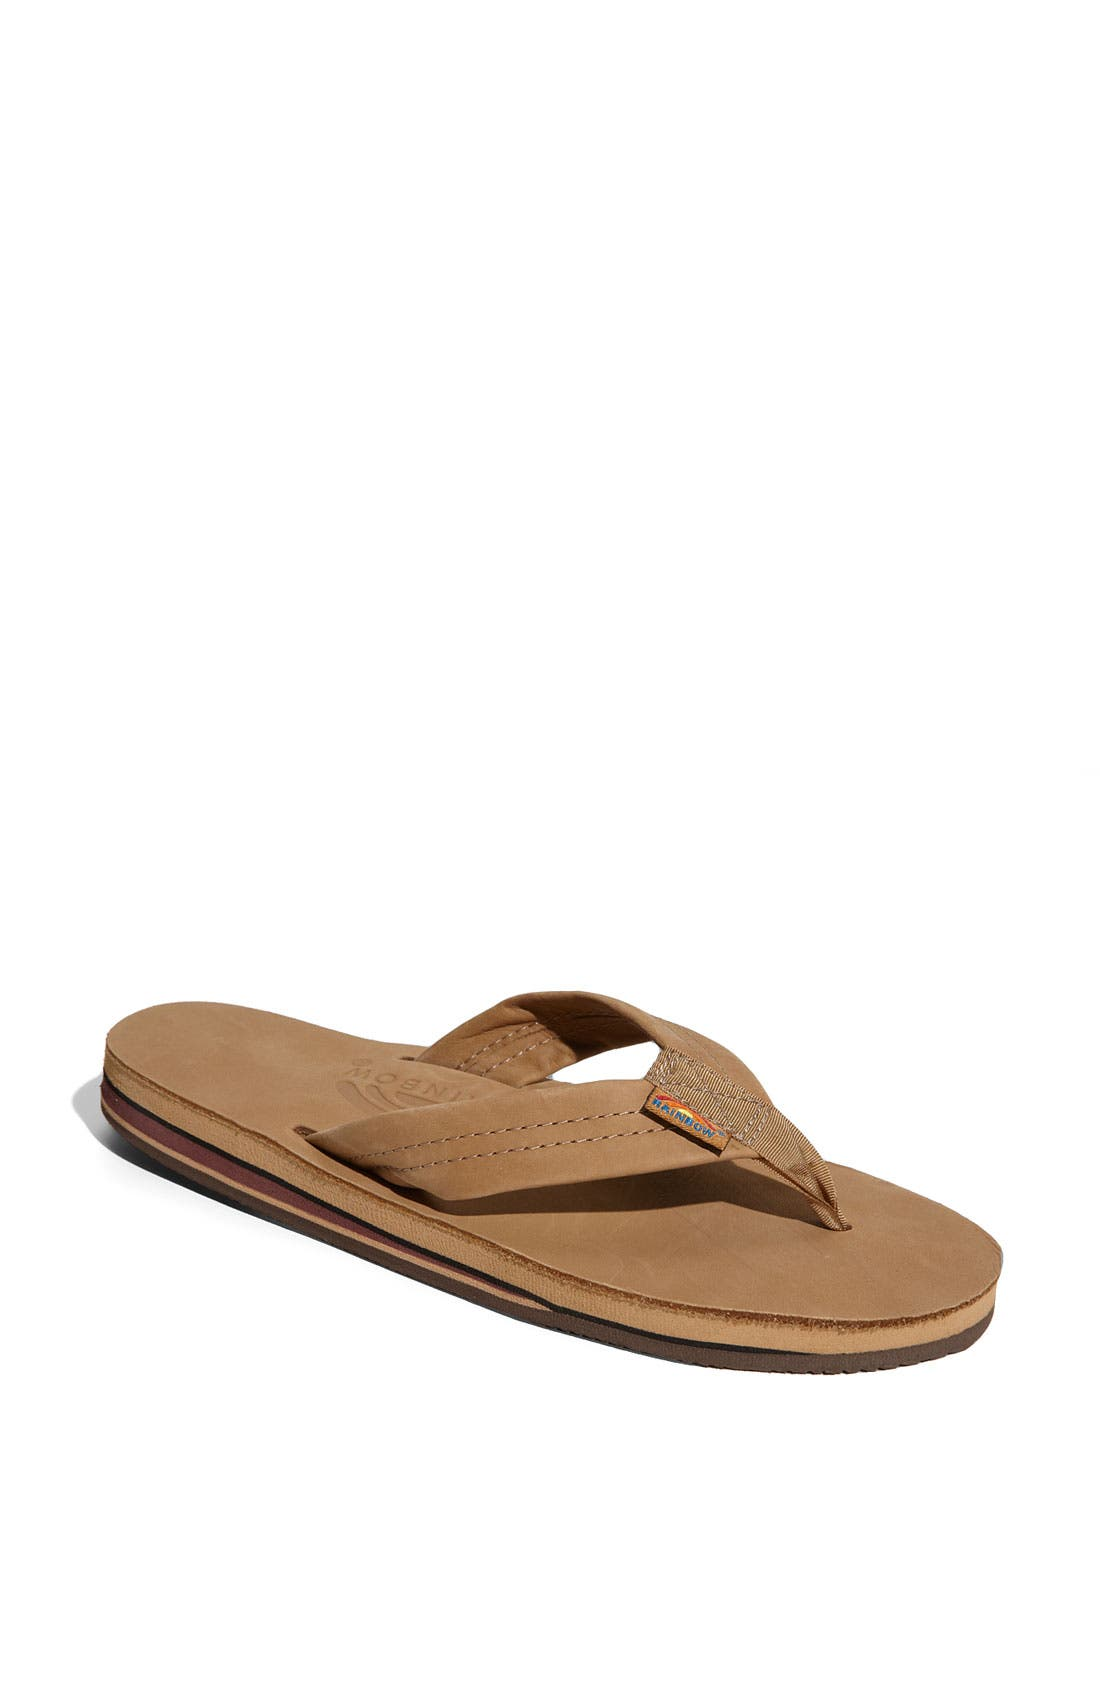 Alternate Image 1 Selected - Rainbow Double Layer Thong Sandal (Women)